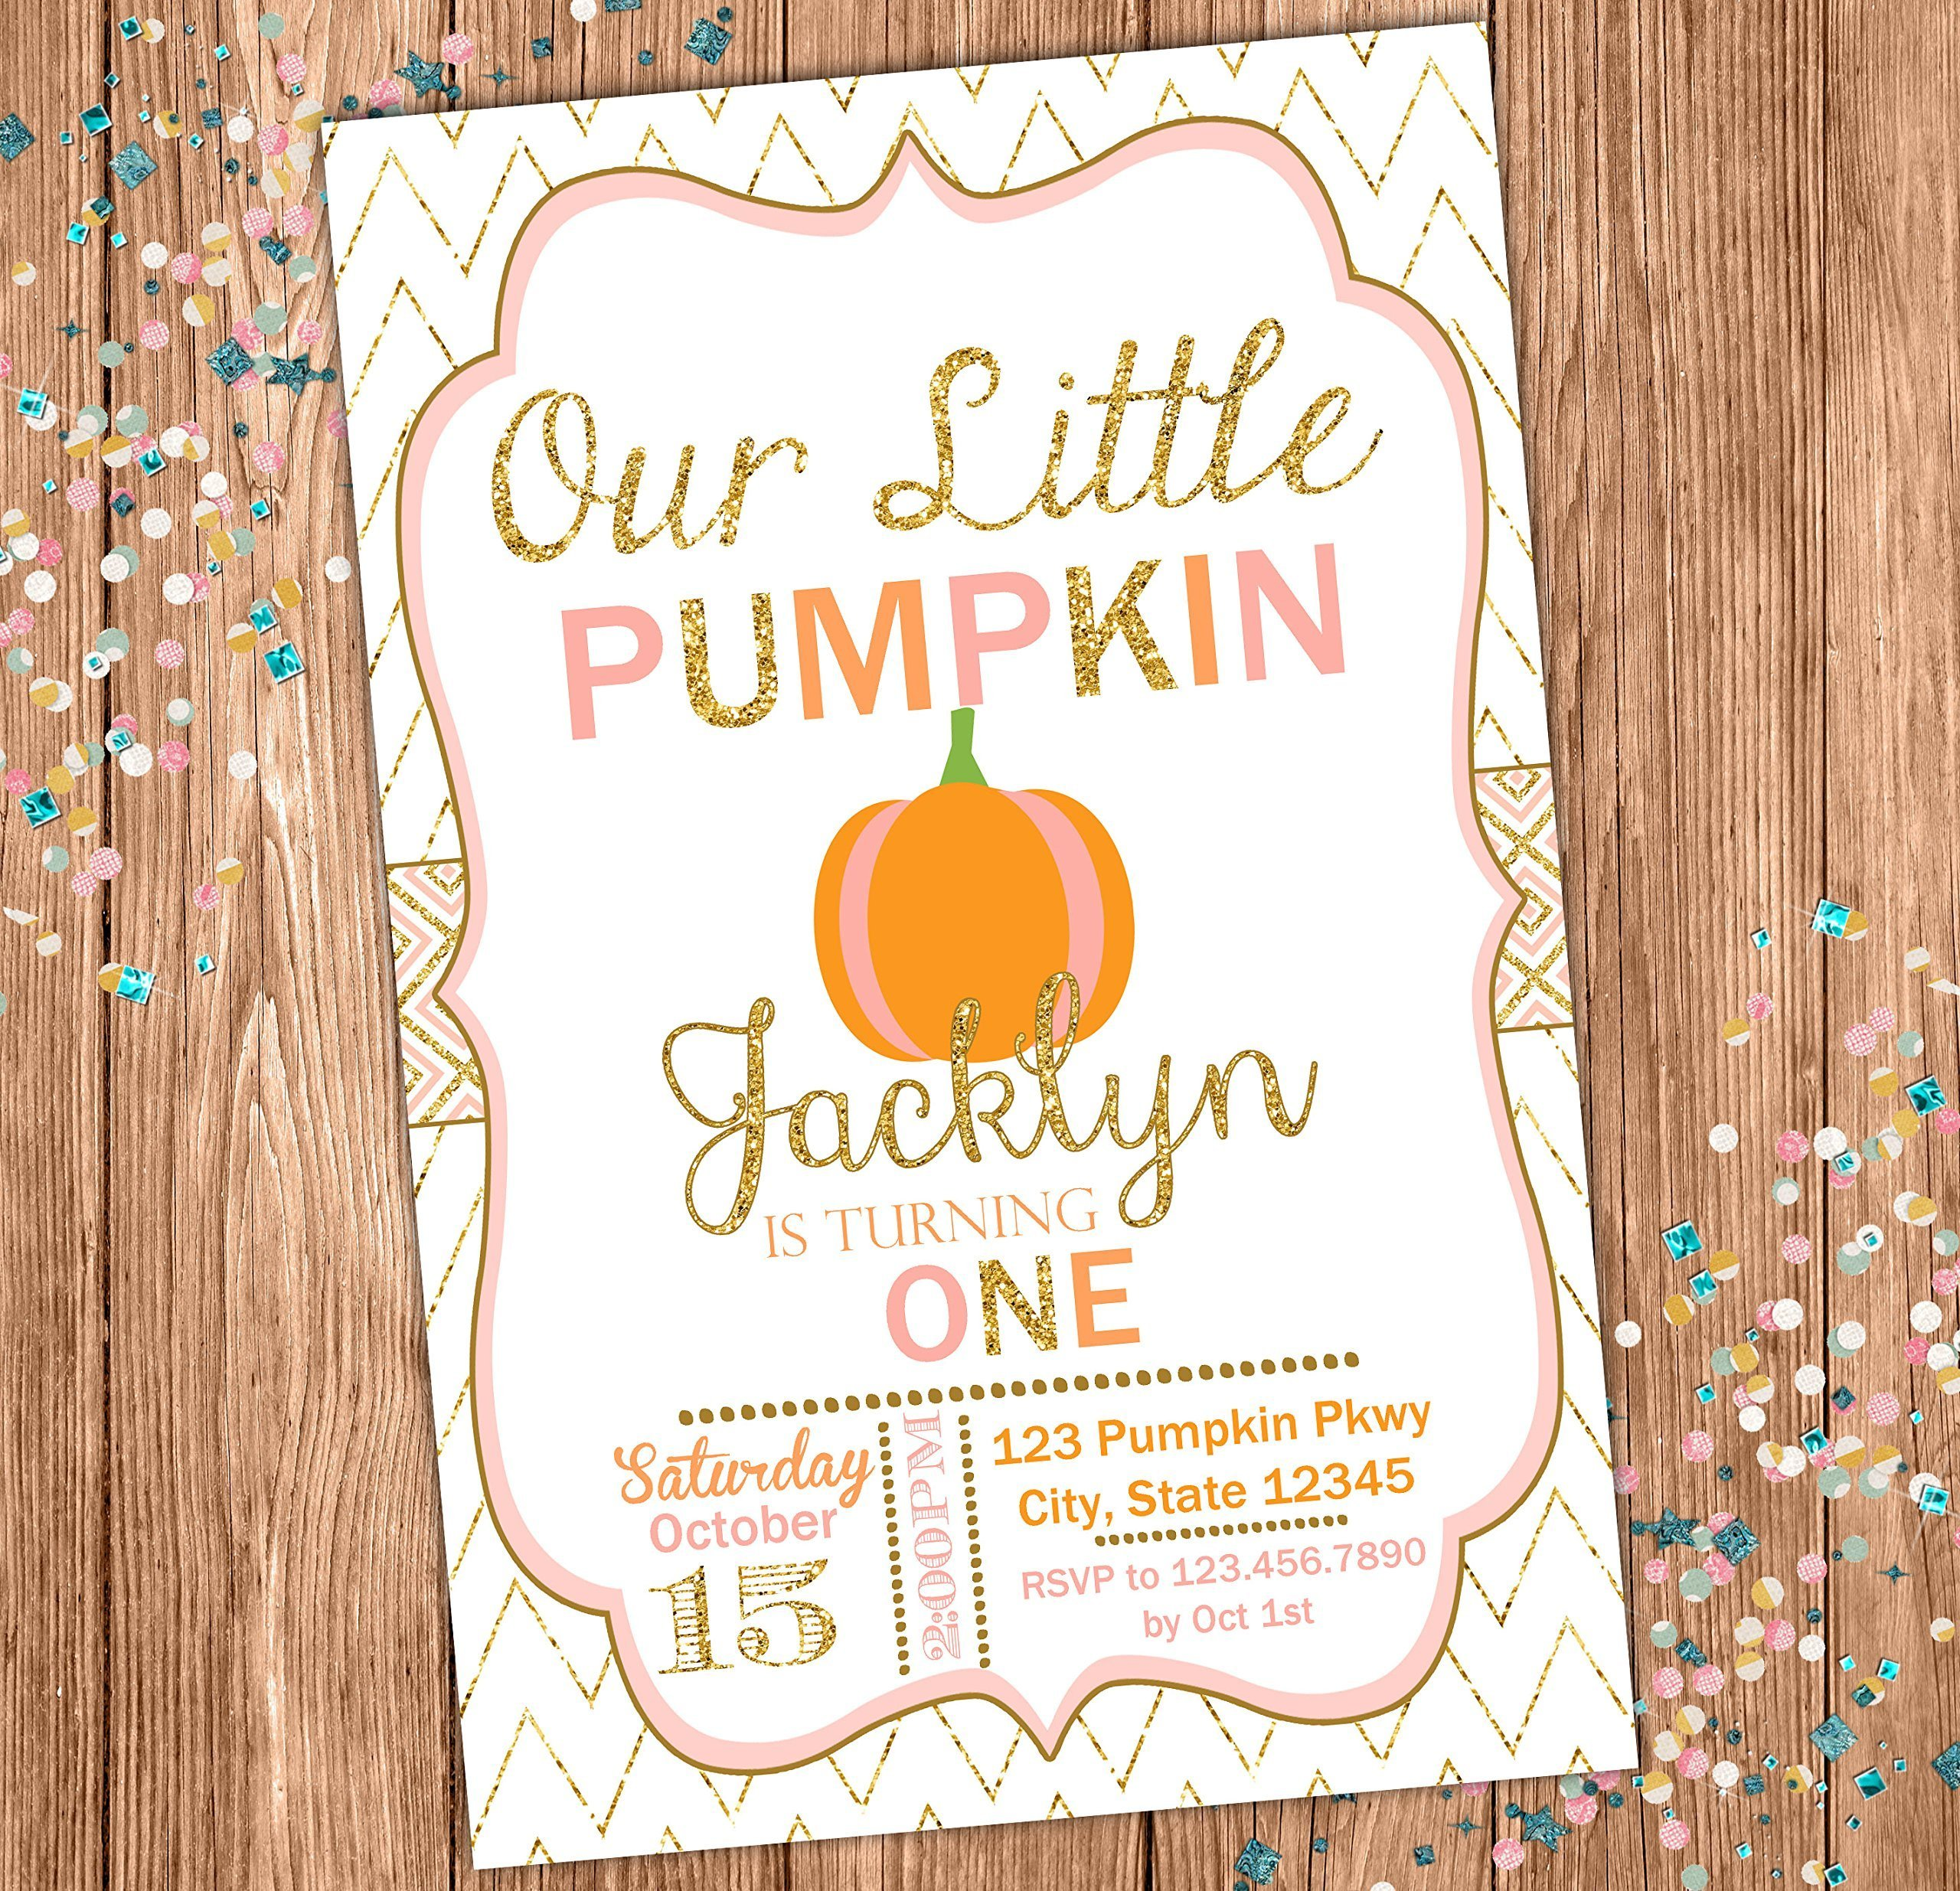 Fall Custom Birthday Invitation - Pumpkin Themed Party Invite - Our Little Pumpkin - Gold Chevron -Personalized - Pink, Pumpkin and Gold by Rainy Zebra Designs